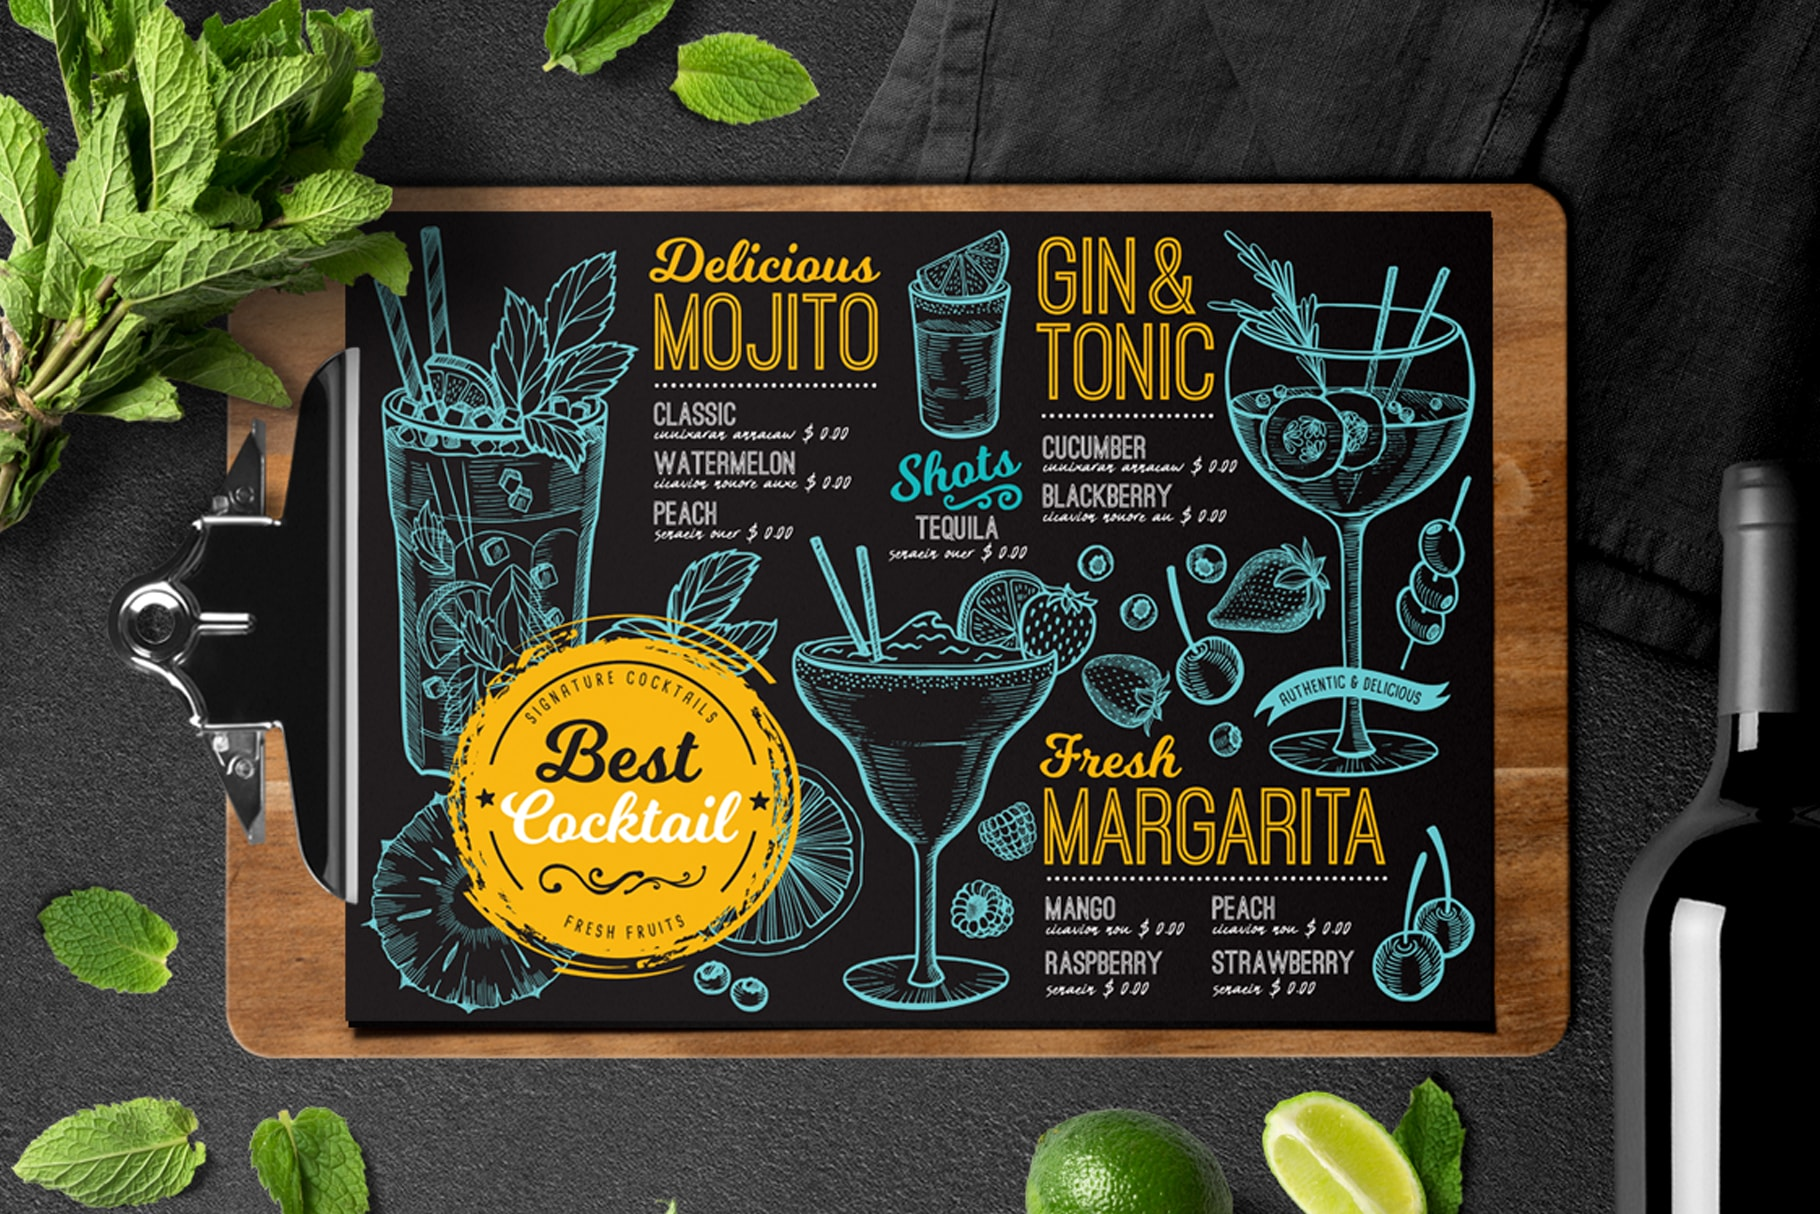 cocktail menu template design for restaurant with hand drawn illustrations